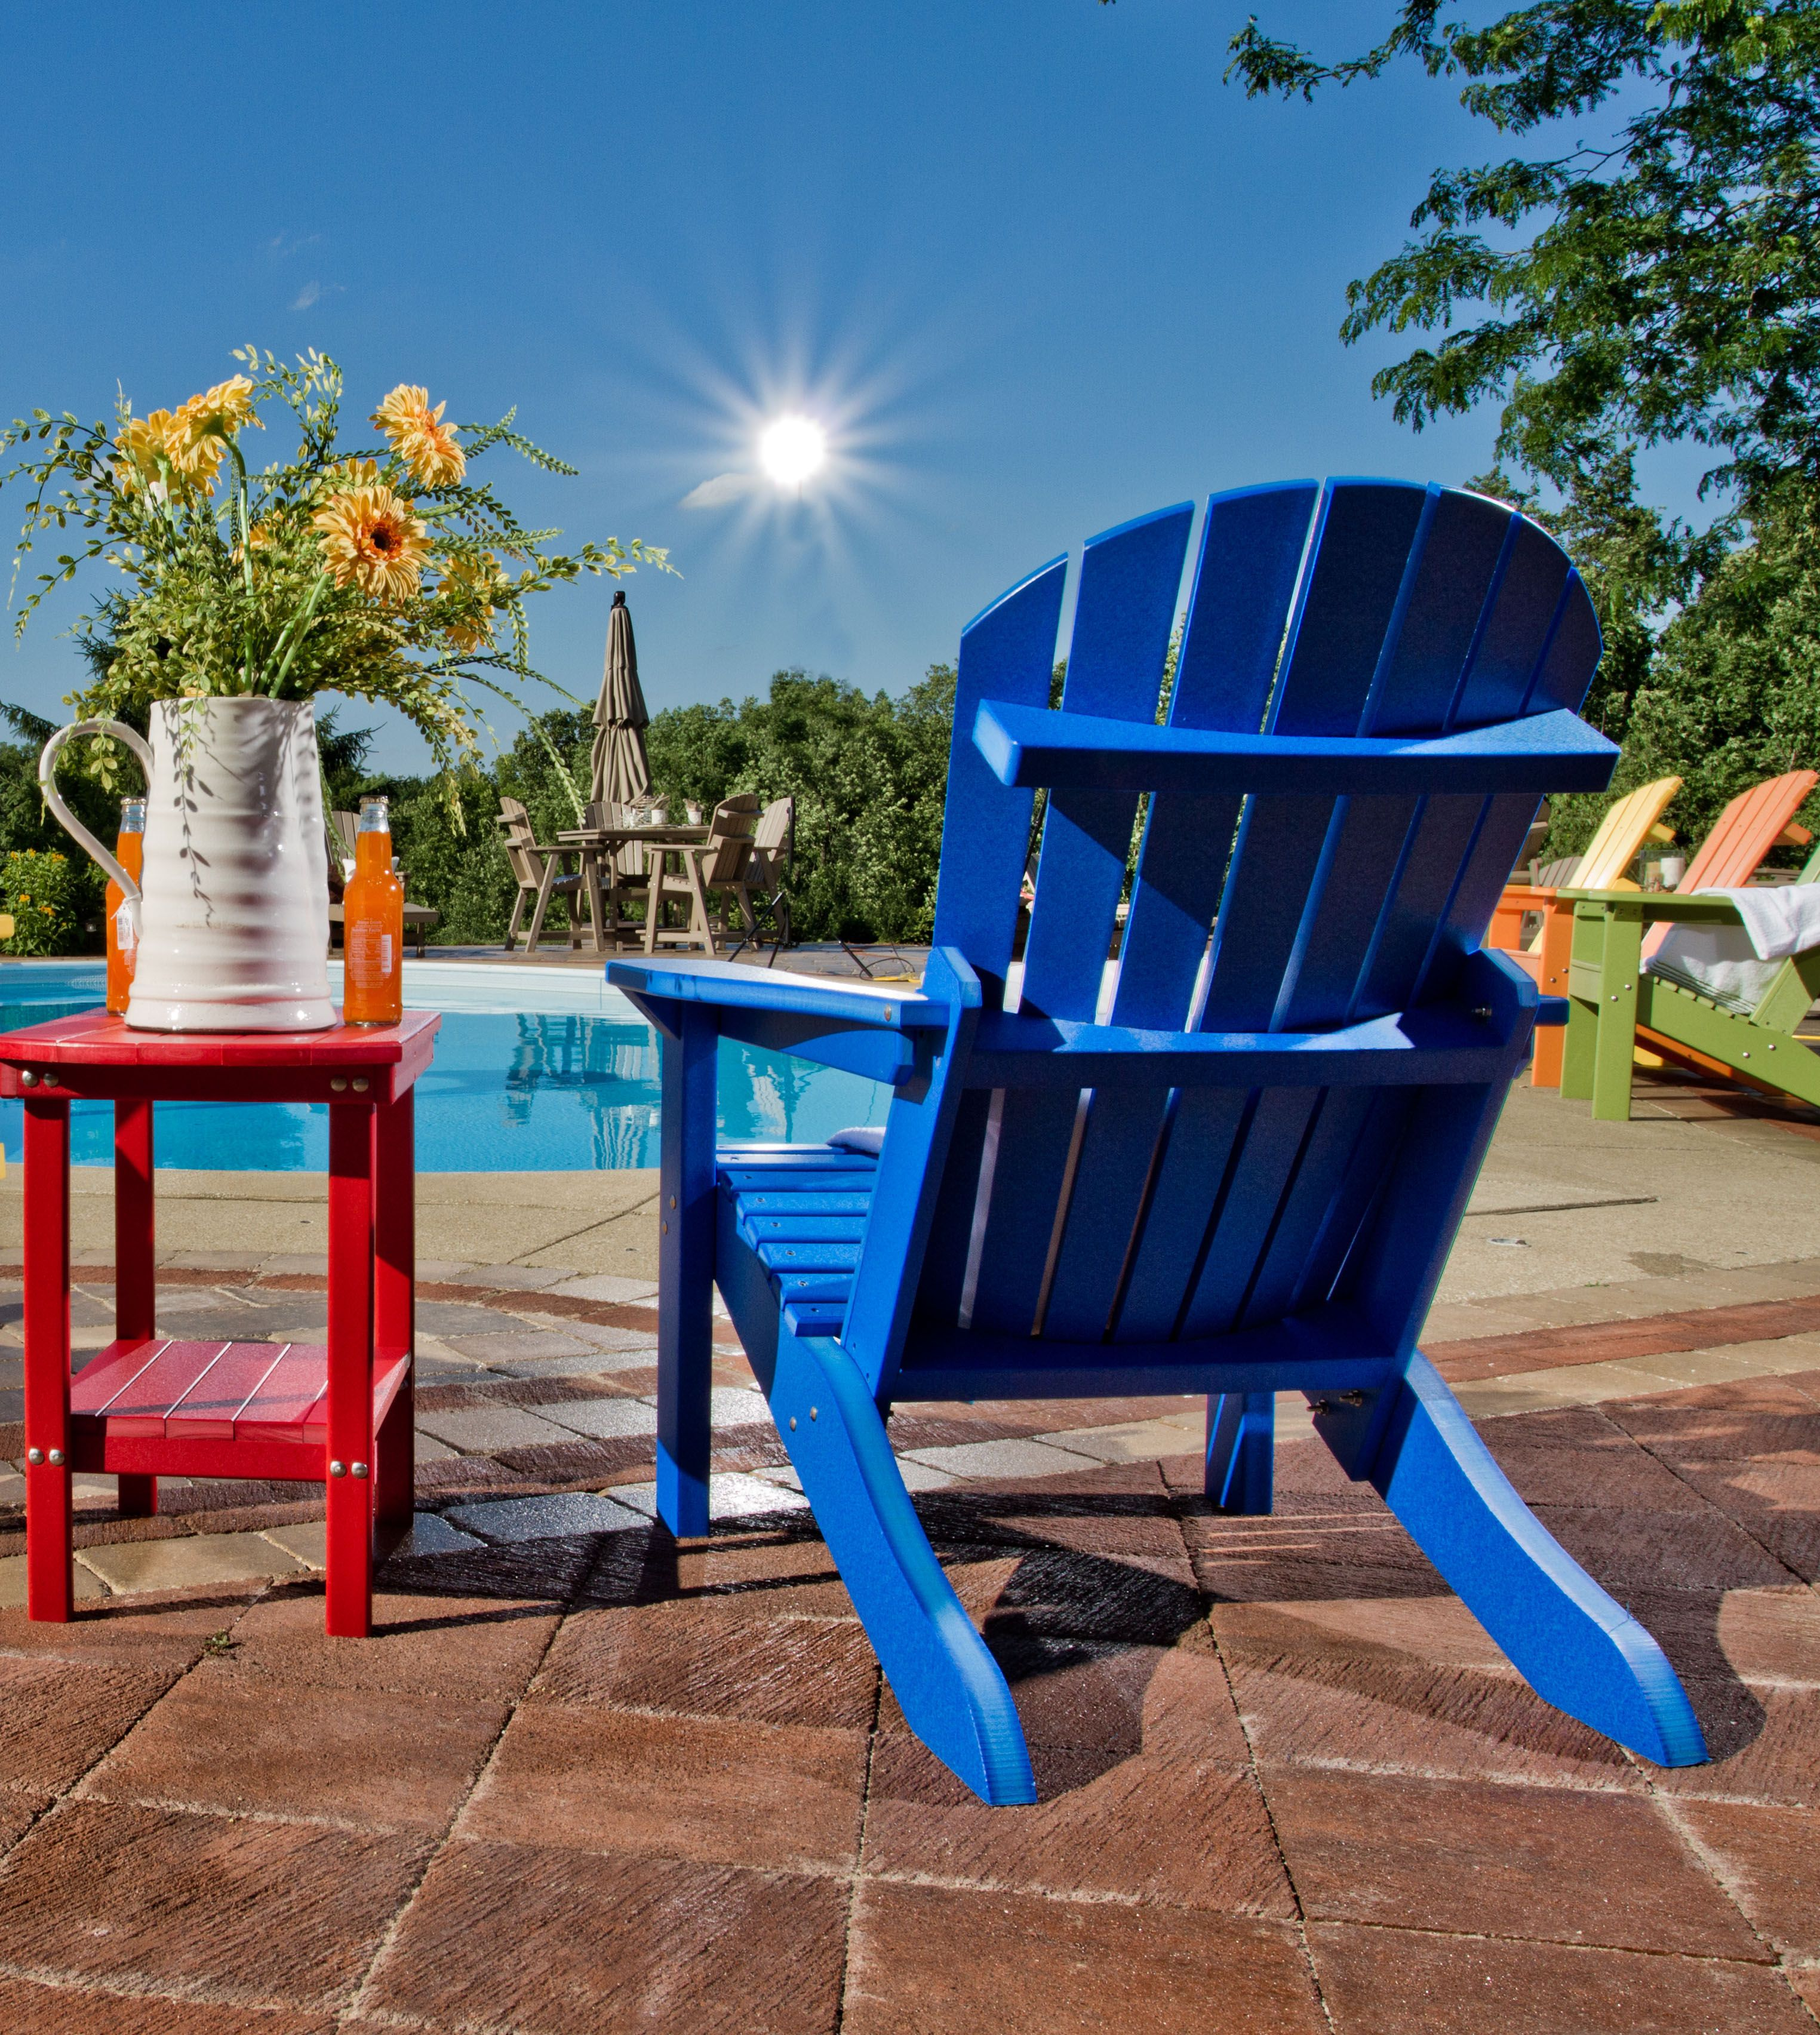 This Bright Blue Adirondack Chair Calls For An Afternoon By The Pool    Available At Shed Solutions Calgary | Edmonton